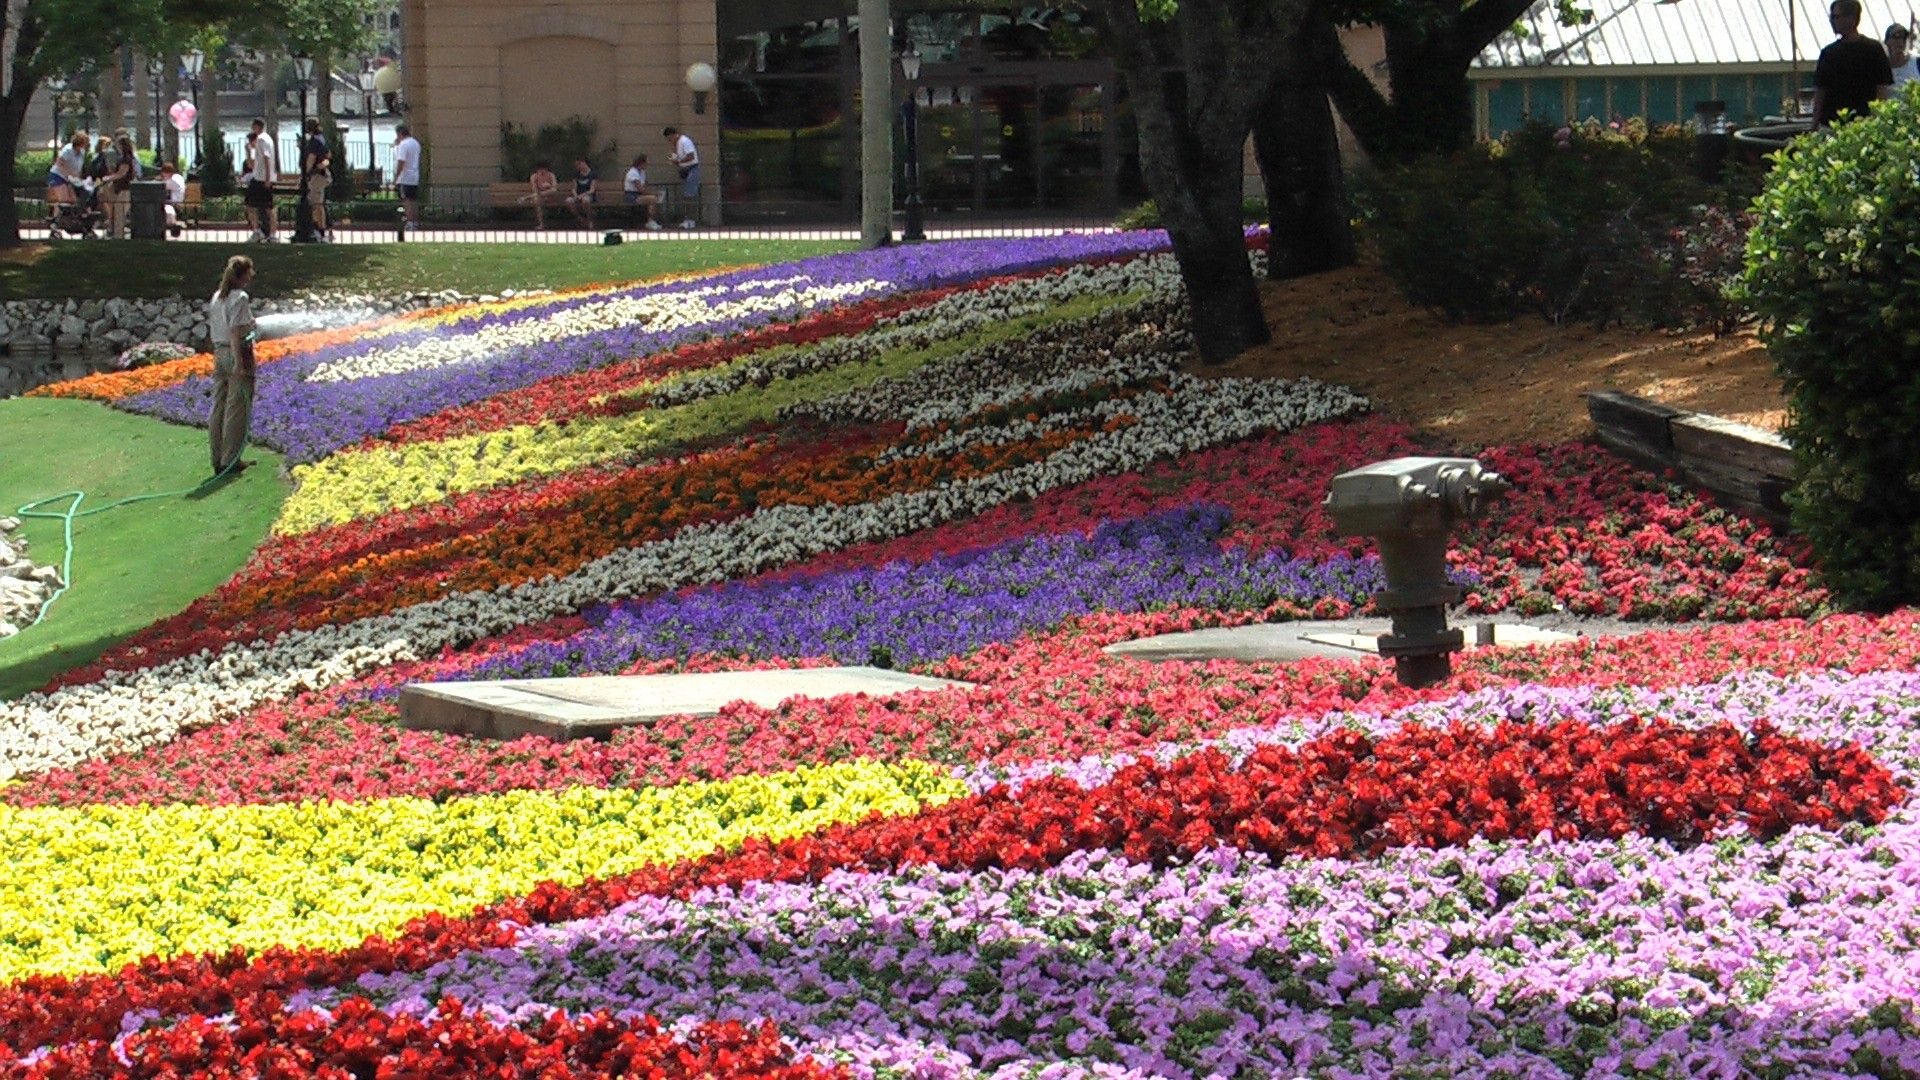 Flowers Gardens Epcot Landscapes Beautiful HD Wallpapers